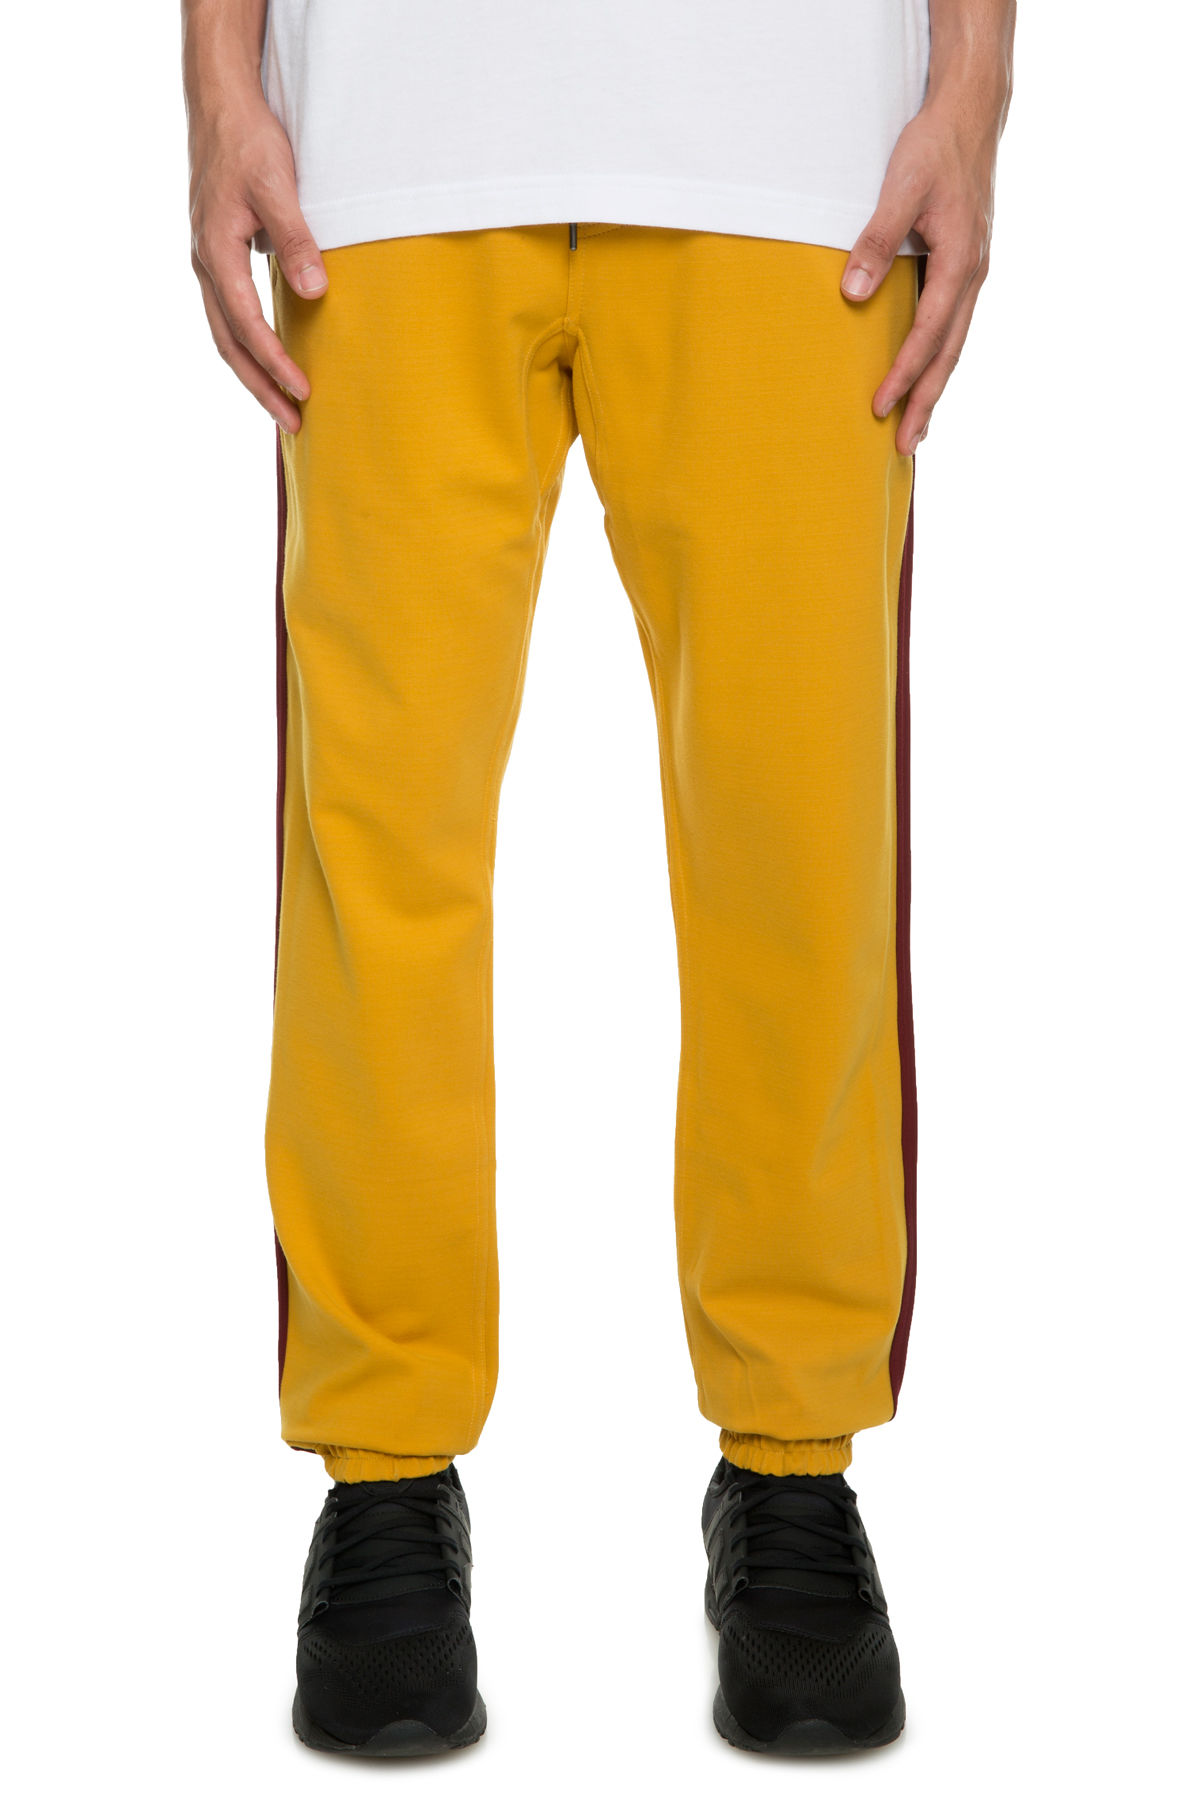 Image of The Wyatt Knit Track Pants in Mustard and Burgundy